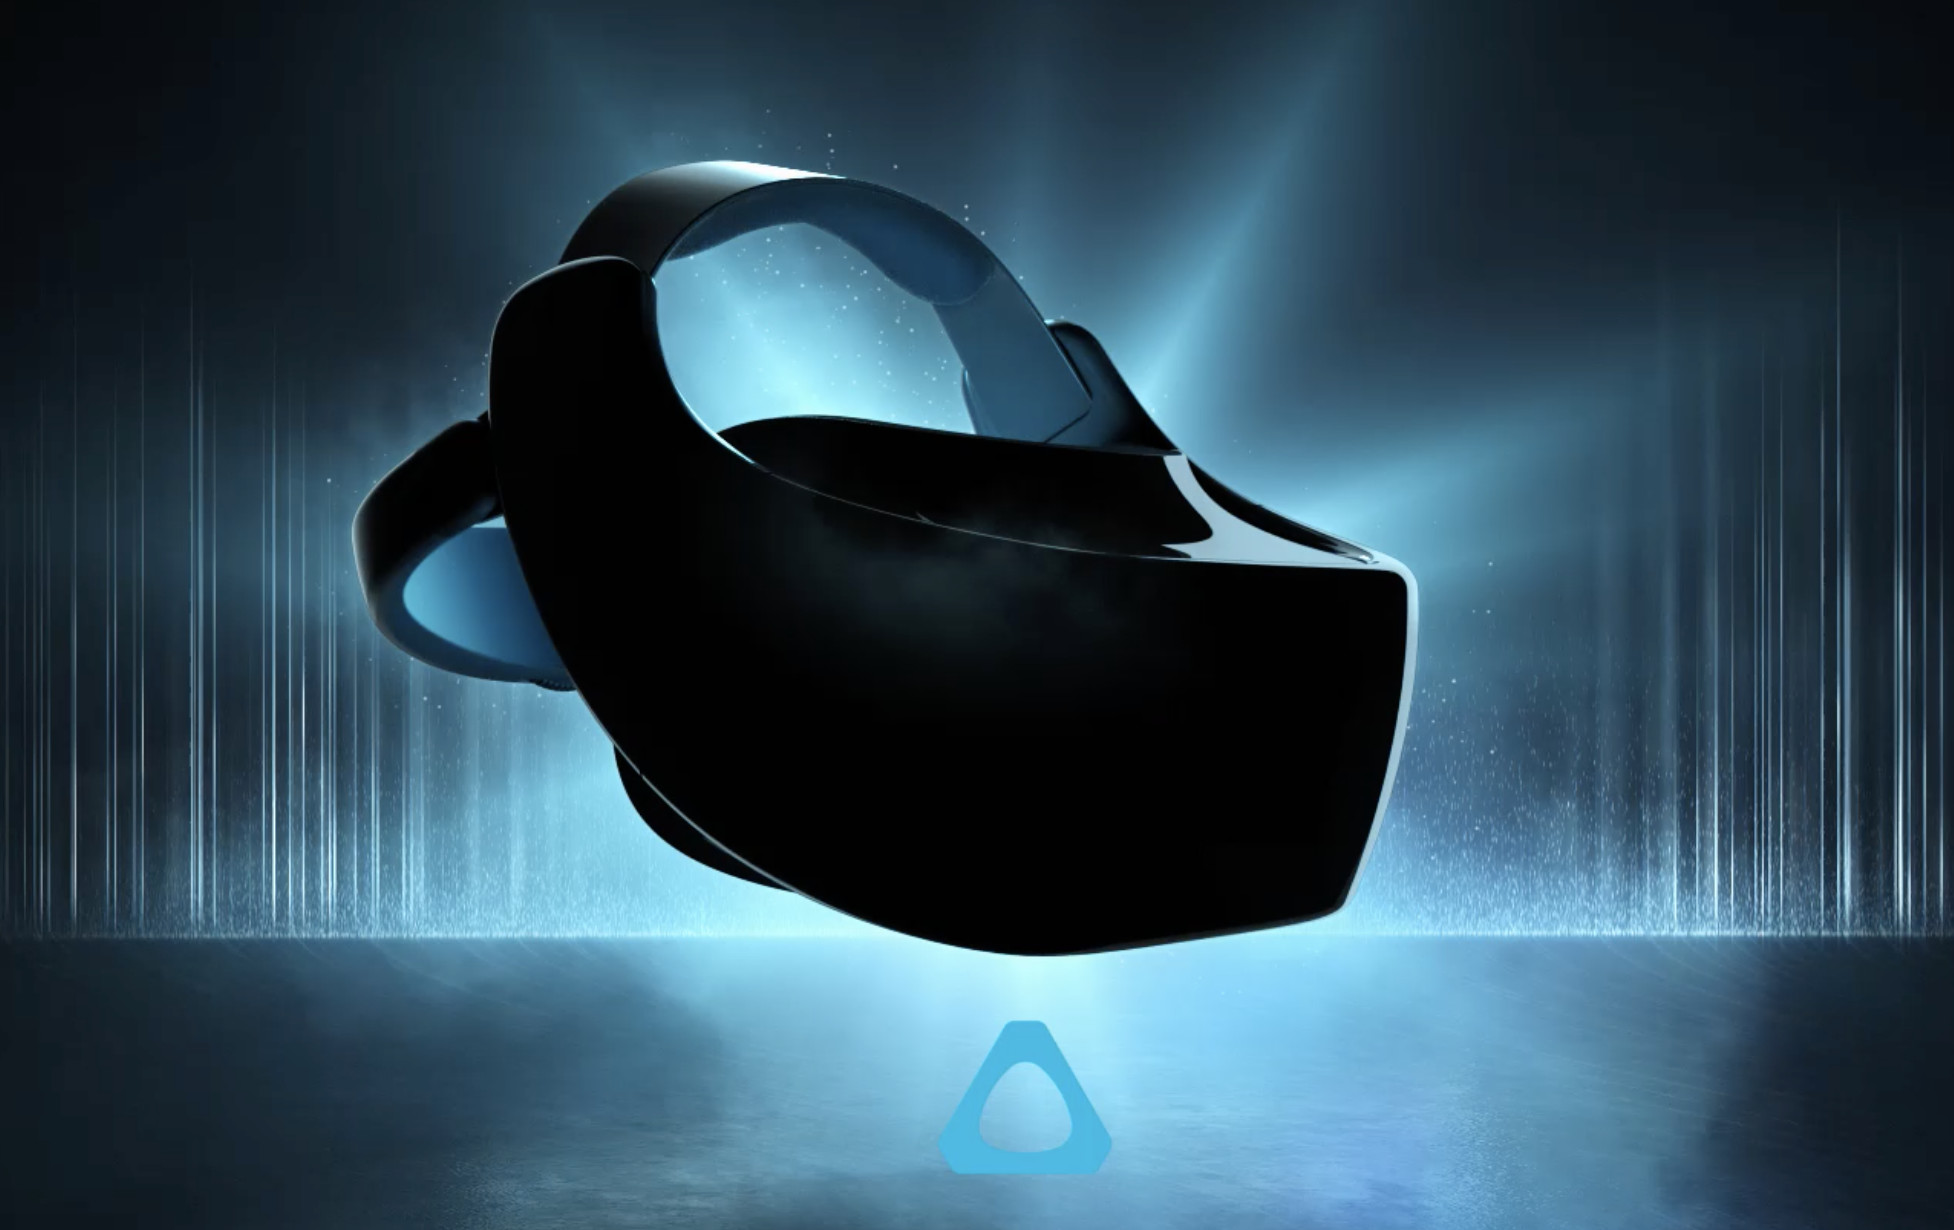 HTC Vive dropped its Google Daydream headset to focus on China